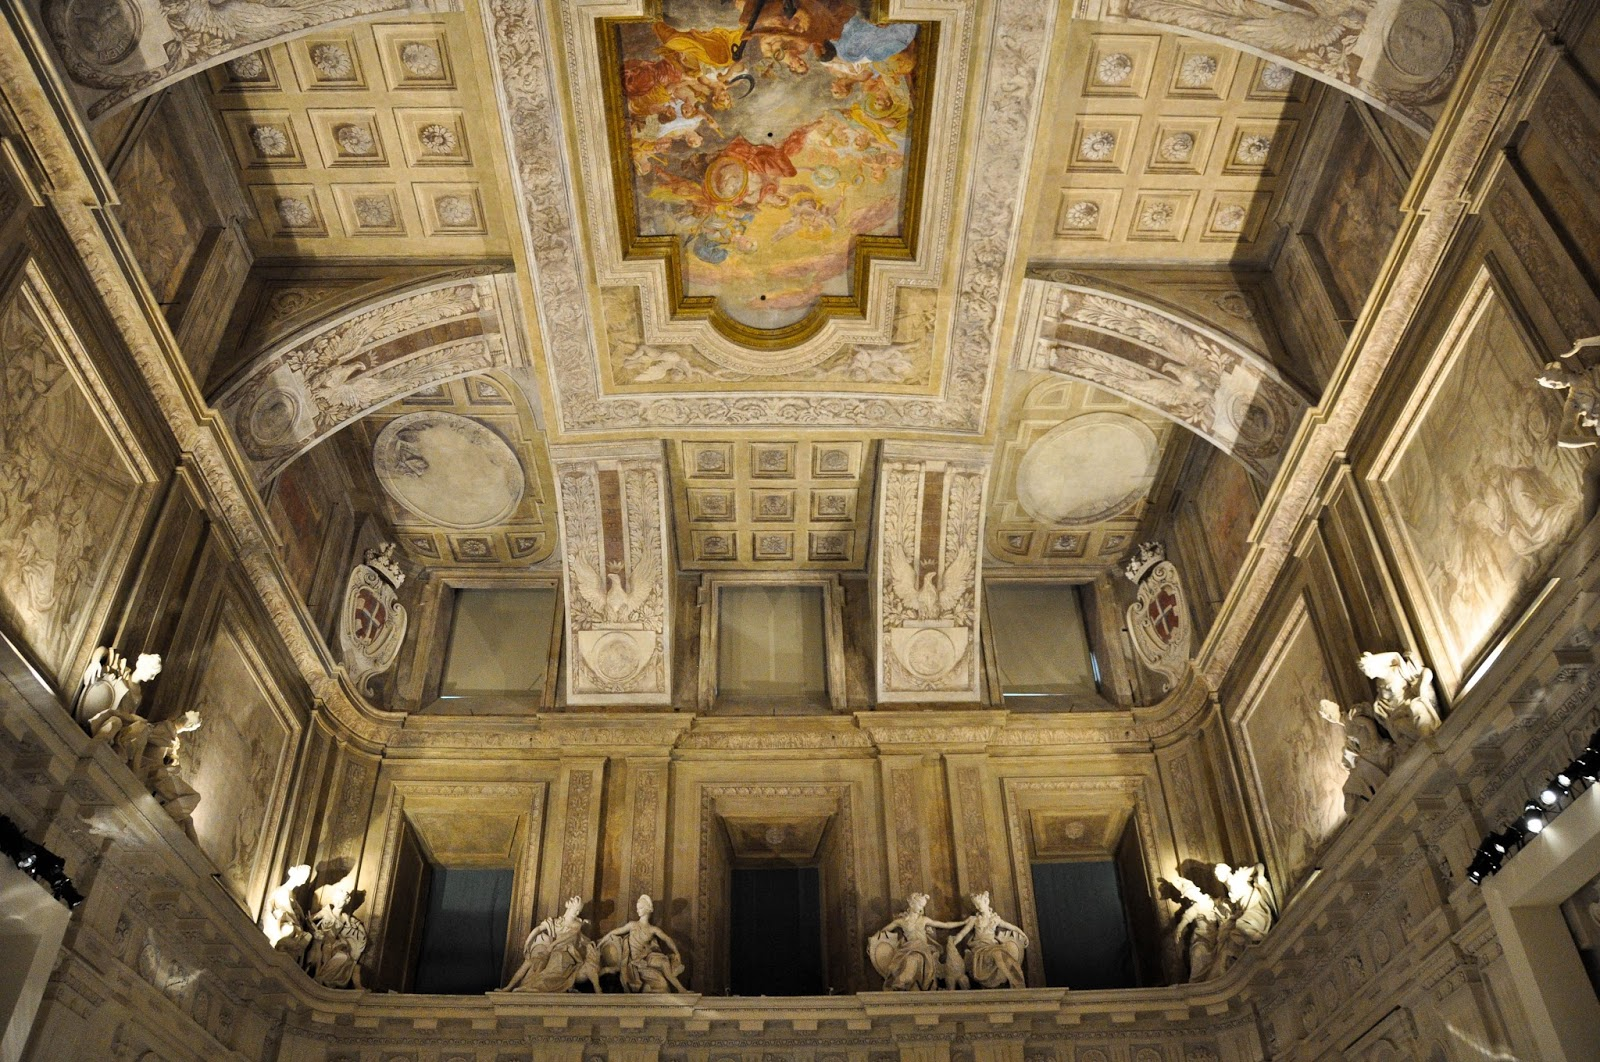 The ceiling of the ball room, First floor, Palazzo Madama, Turin, Italy